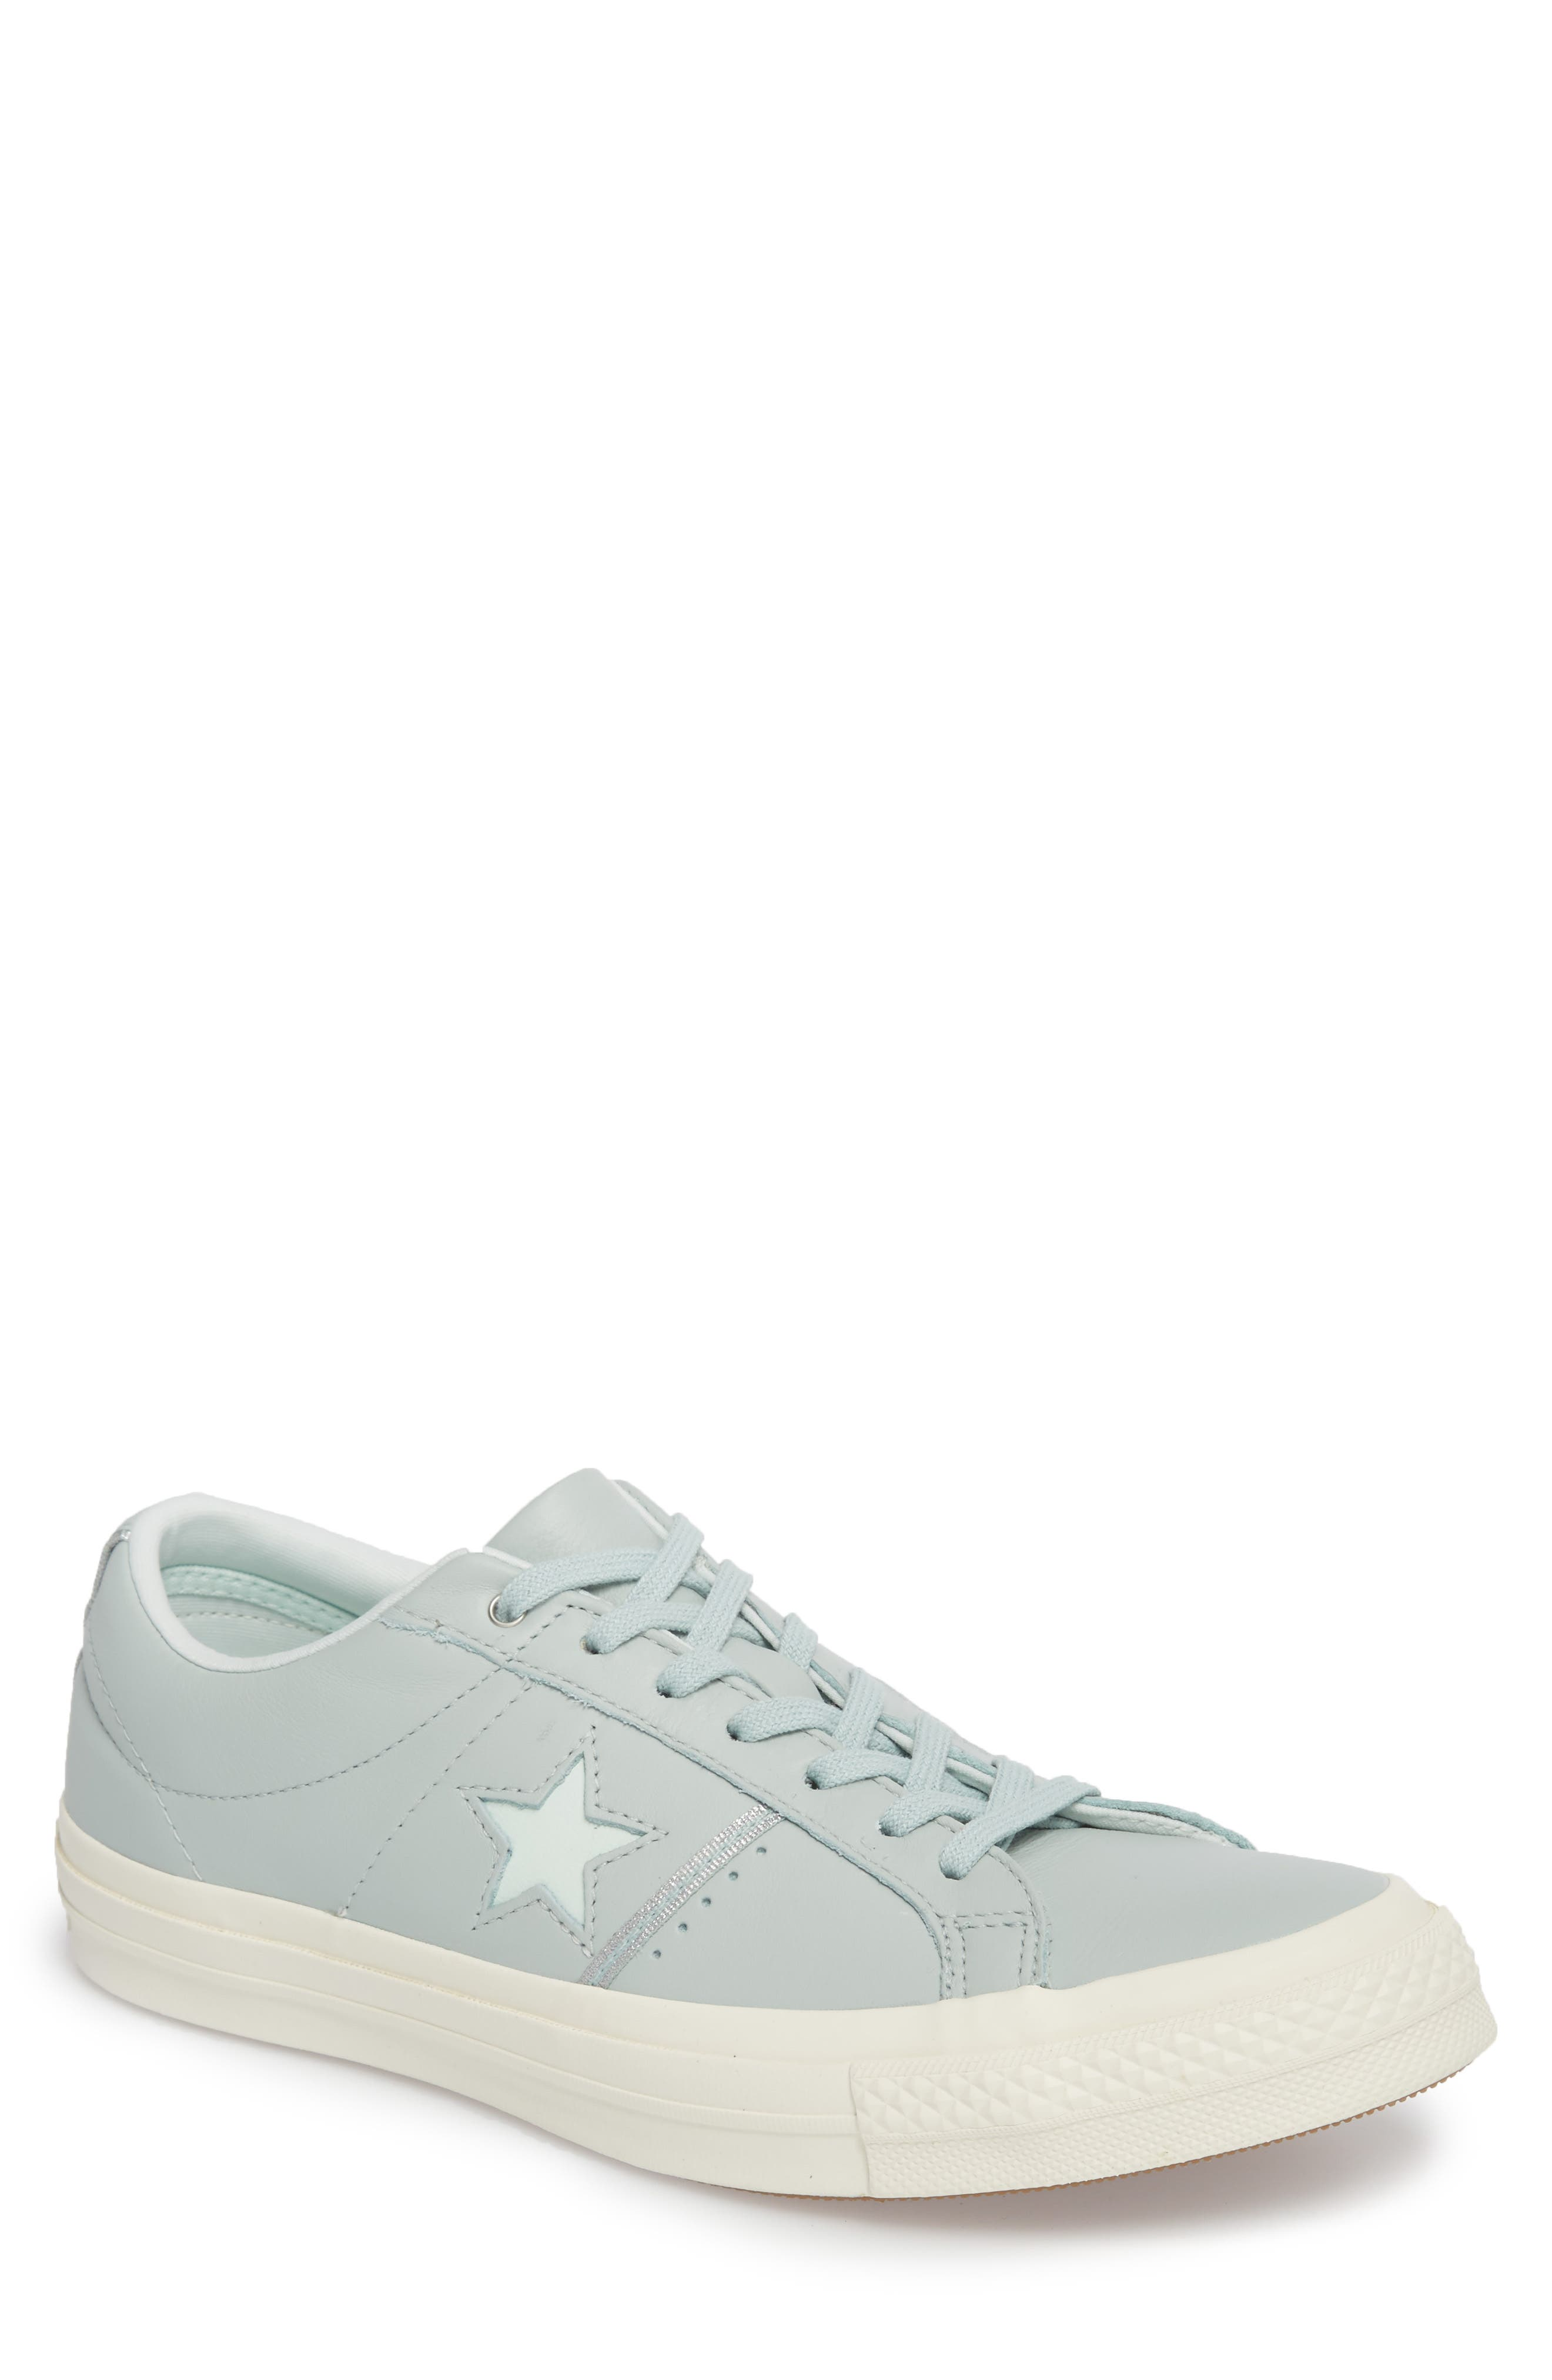 Chuck Taylor<sup>®</sup> One Star Piping Sneaker,                         Main,                         color, 026